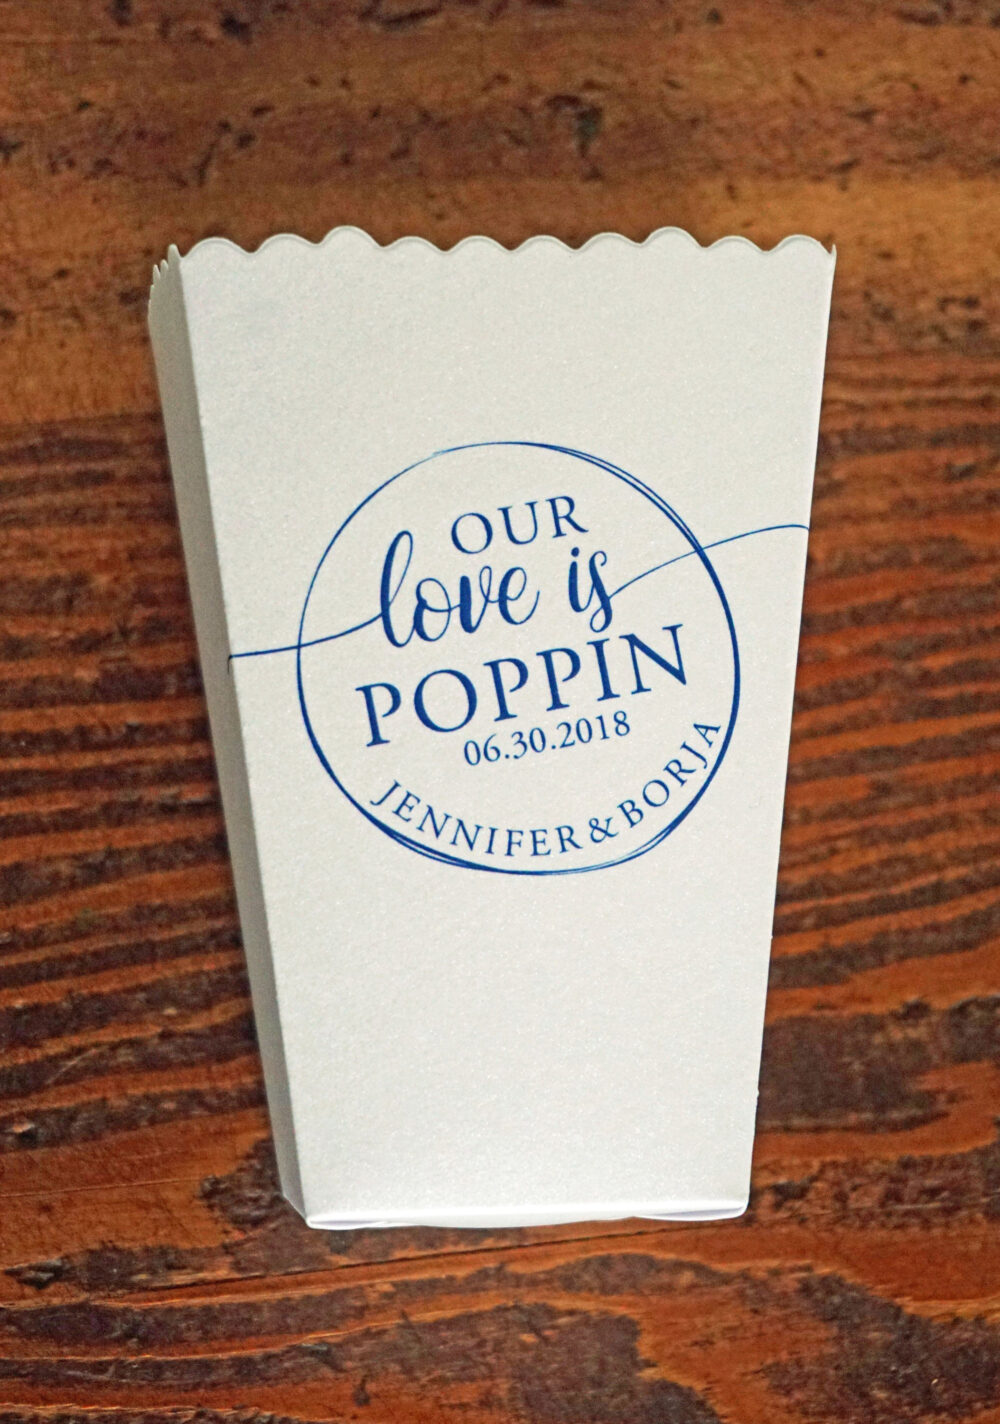 Mini Popcorn Box Wedding Favor-Our Love Is Poppin' - Custom Printed Box-Favor Bar-Micro Favor Our Popping